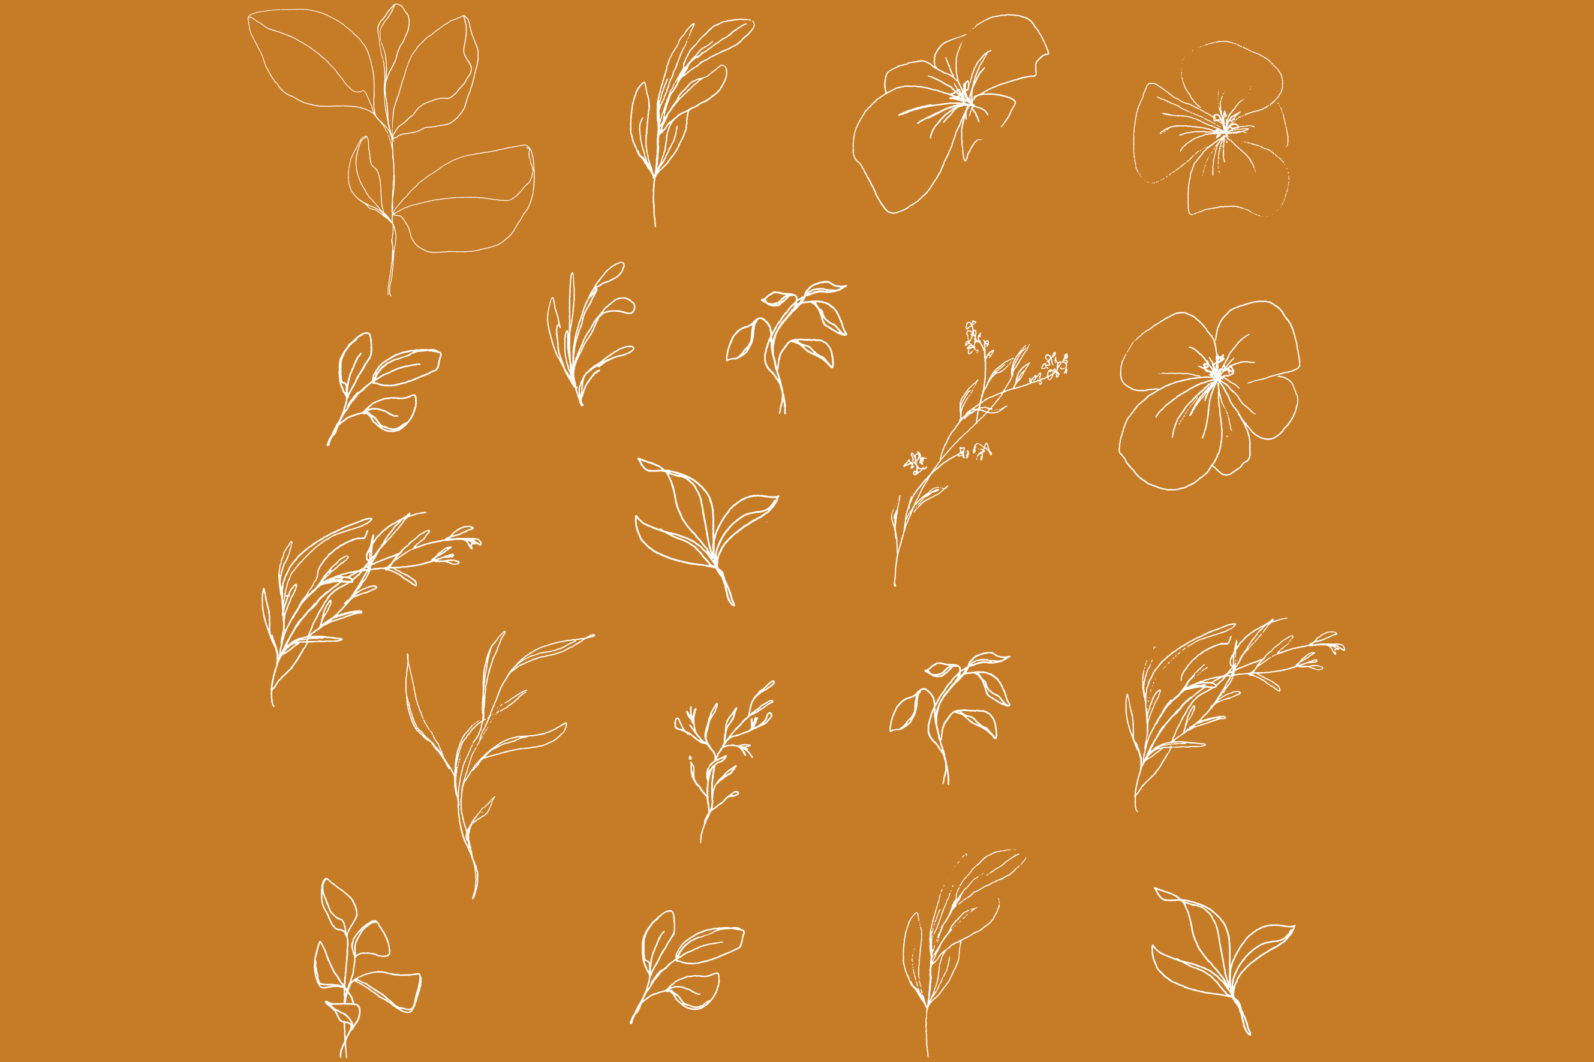 Floral pencil drawing one line art elements, Vector - etsy pencil preview4 -